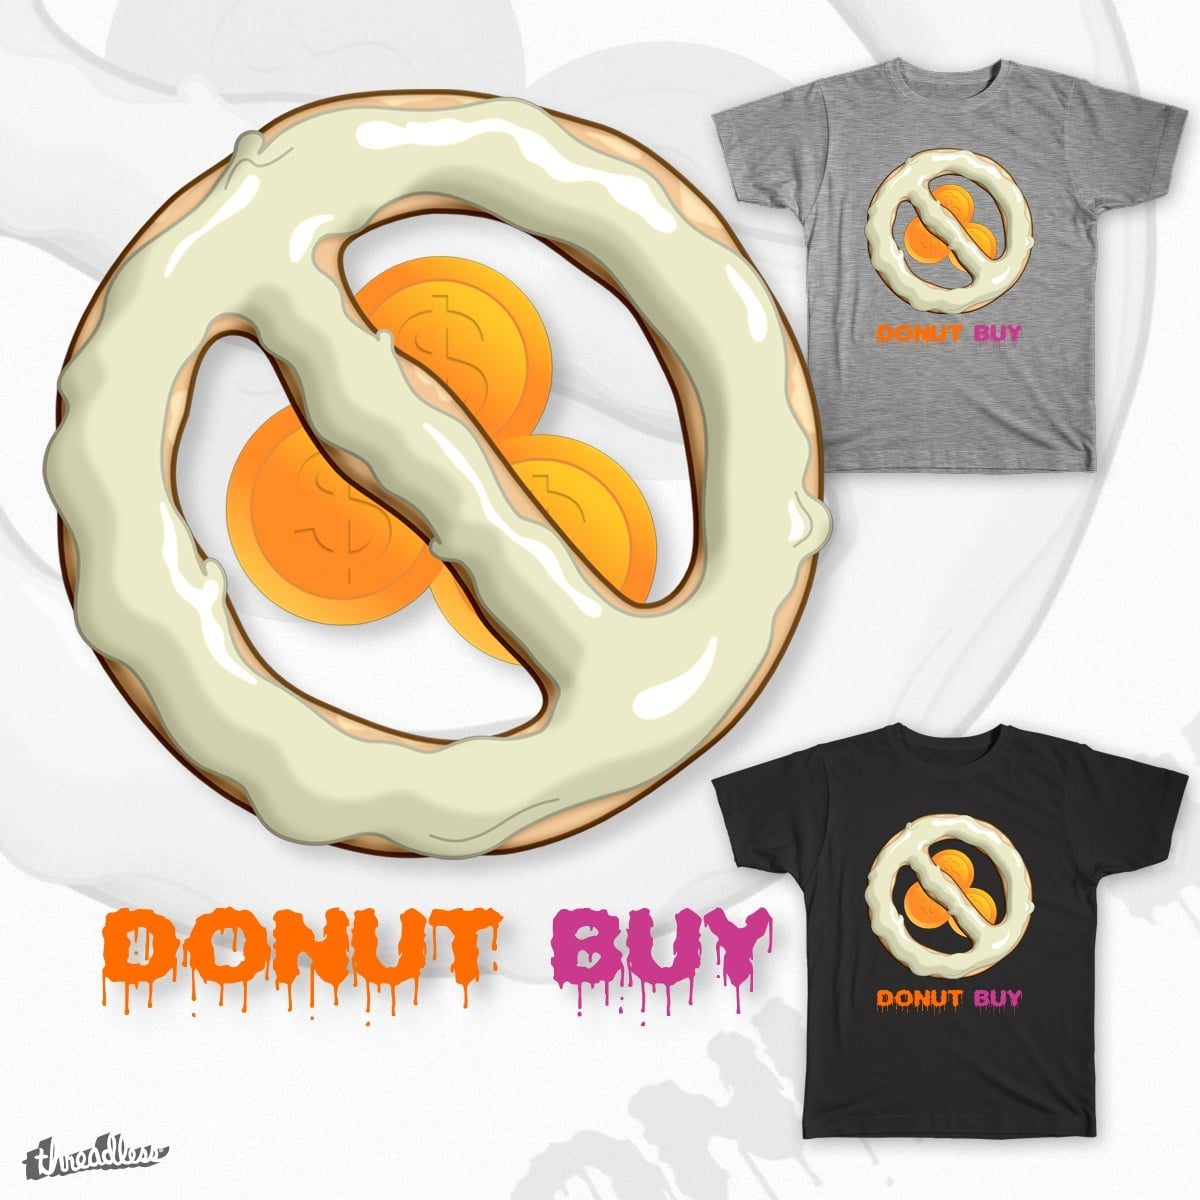 DONUT_BUY by pong_pagong on Threadless